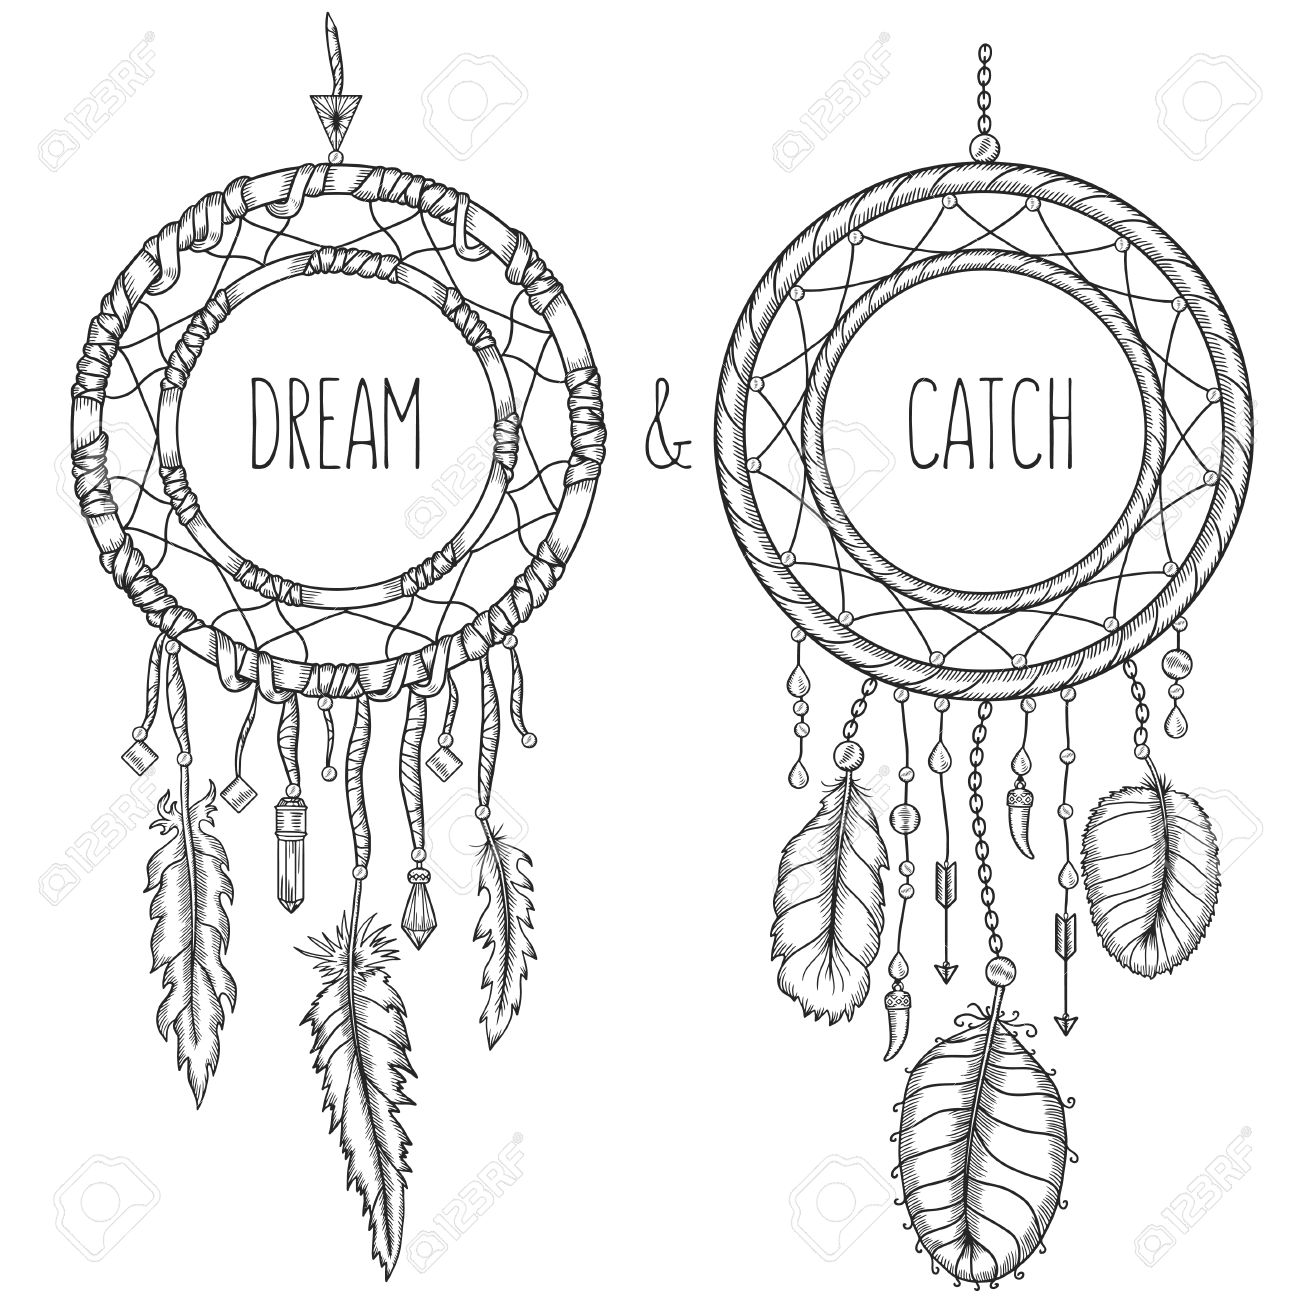 Poster design drawing - Dream Catchers Native American Traditional Symbol T Shirt Bag Poster Design